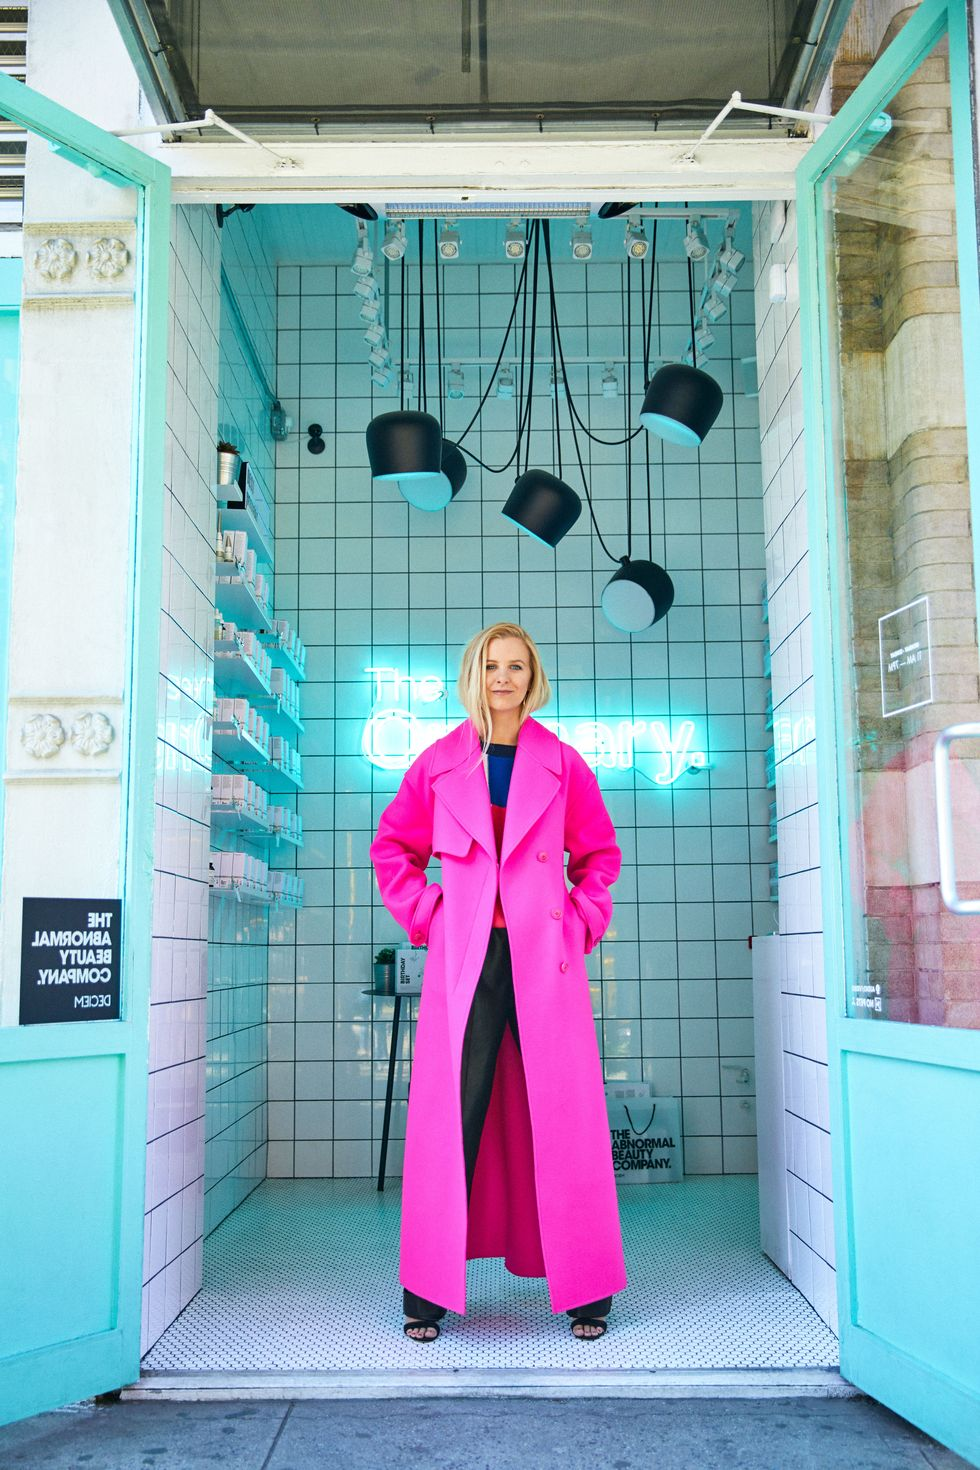 Deciem's Nicola Kilner Has Been in Charge All Along